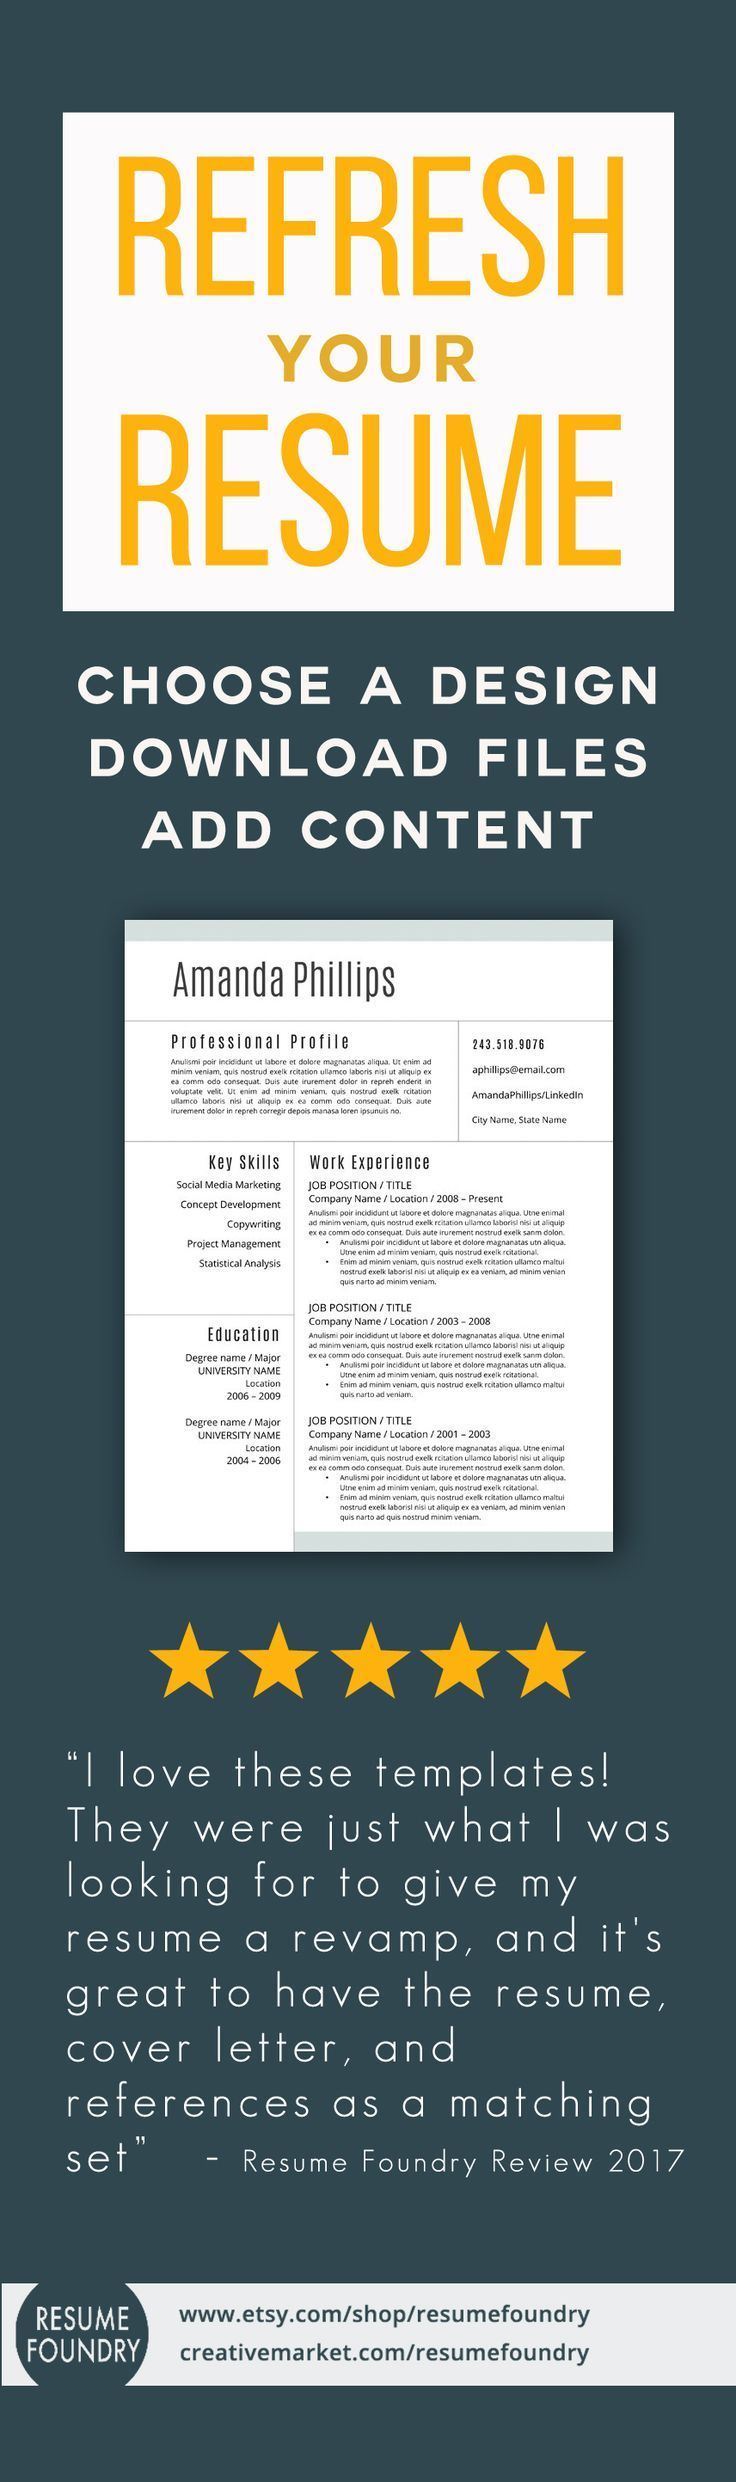 Modernize your resume in no time at all by using a professional resume template. Just choose a design, download the files and voila - ready to go.